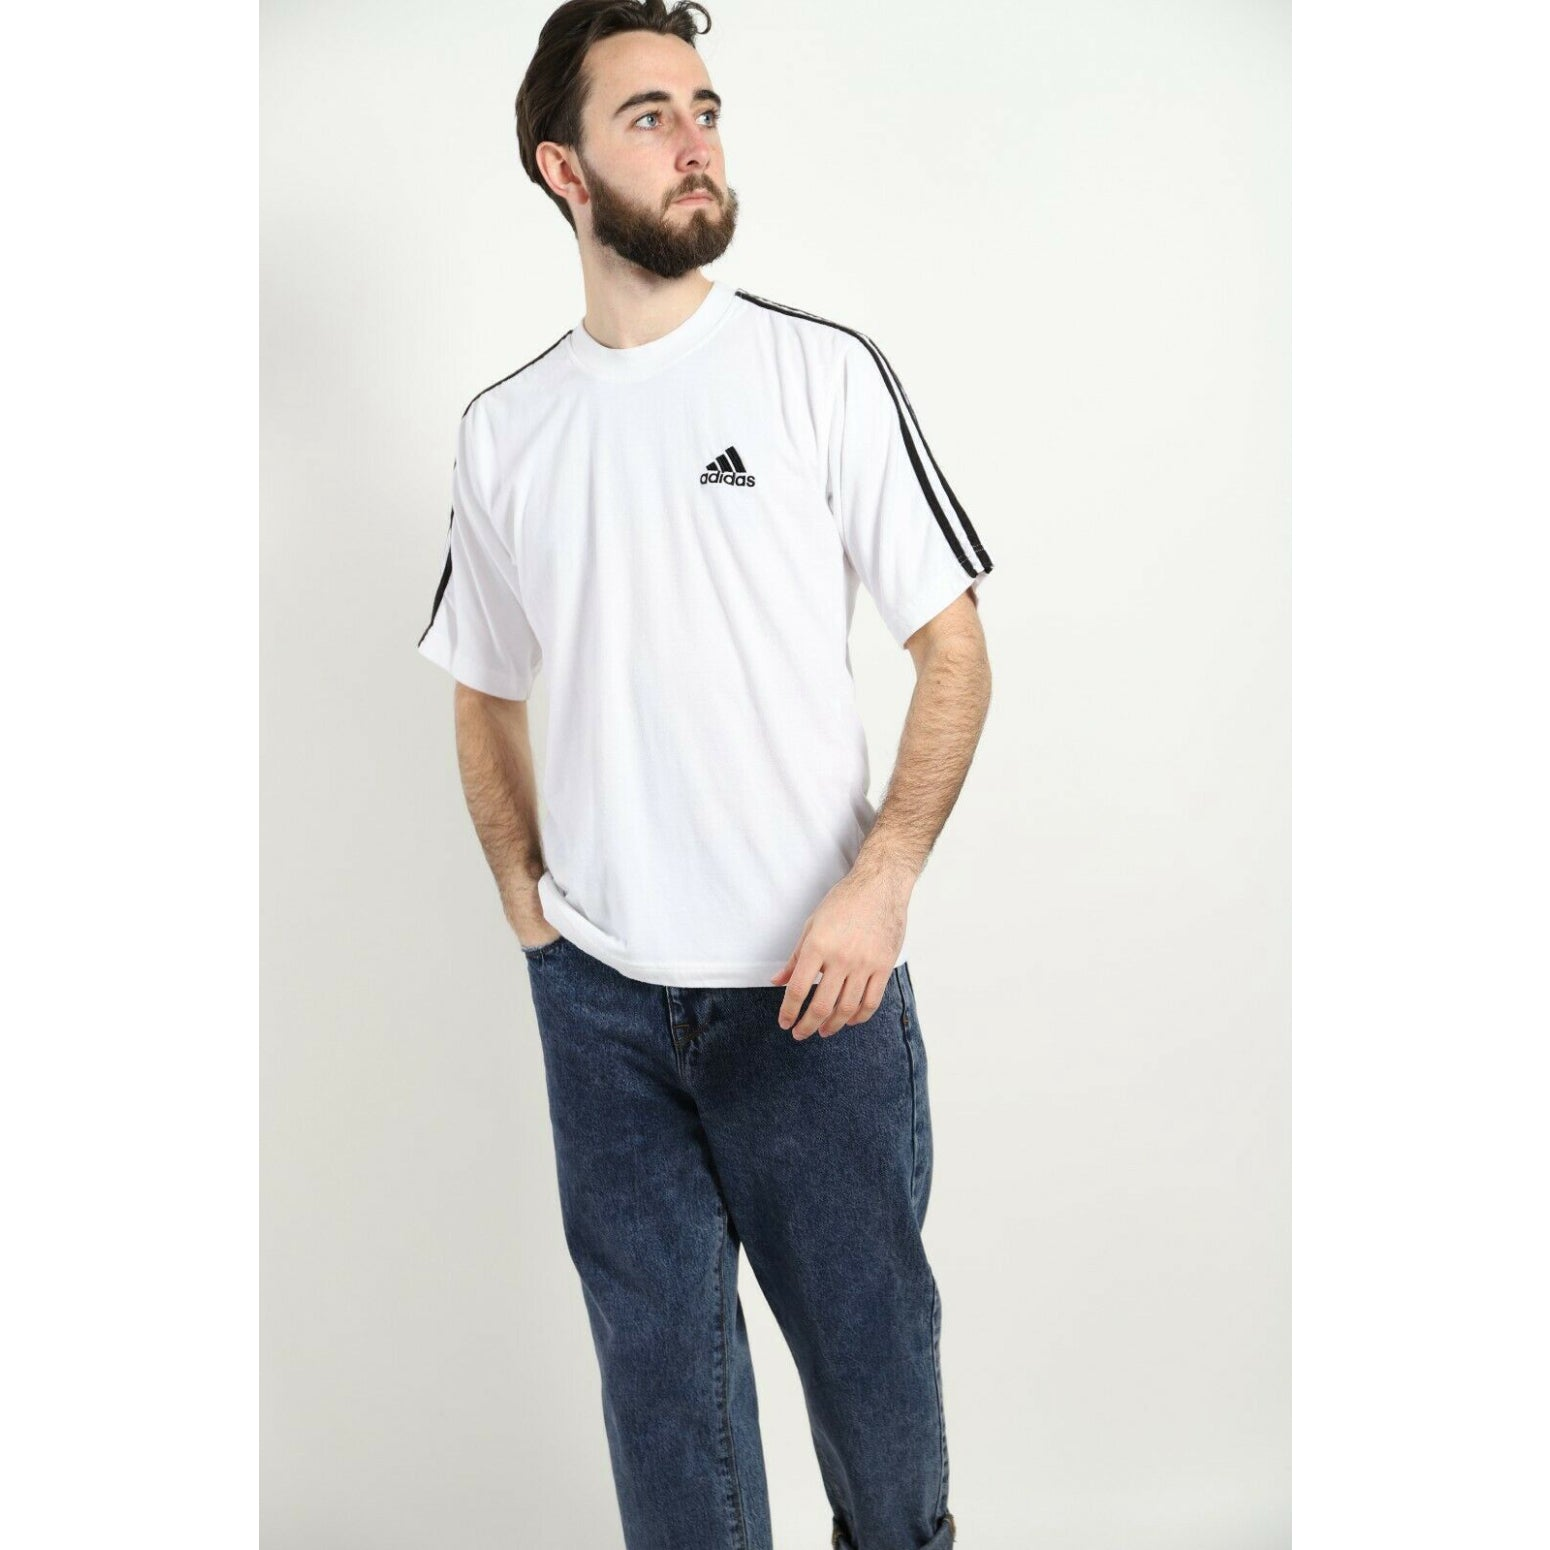 Vintage 90s ADIDAS T Shirt Small Logo White | Small S